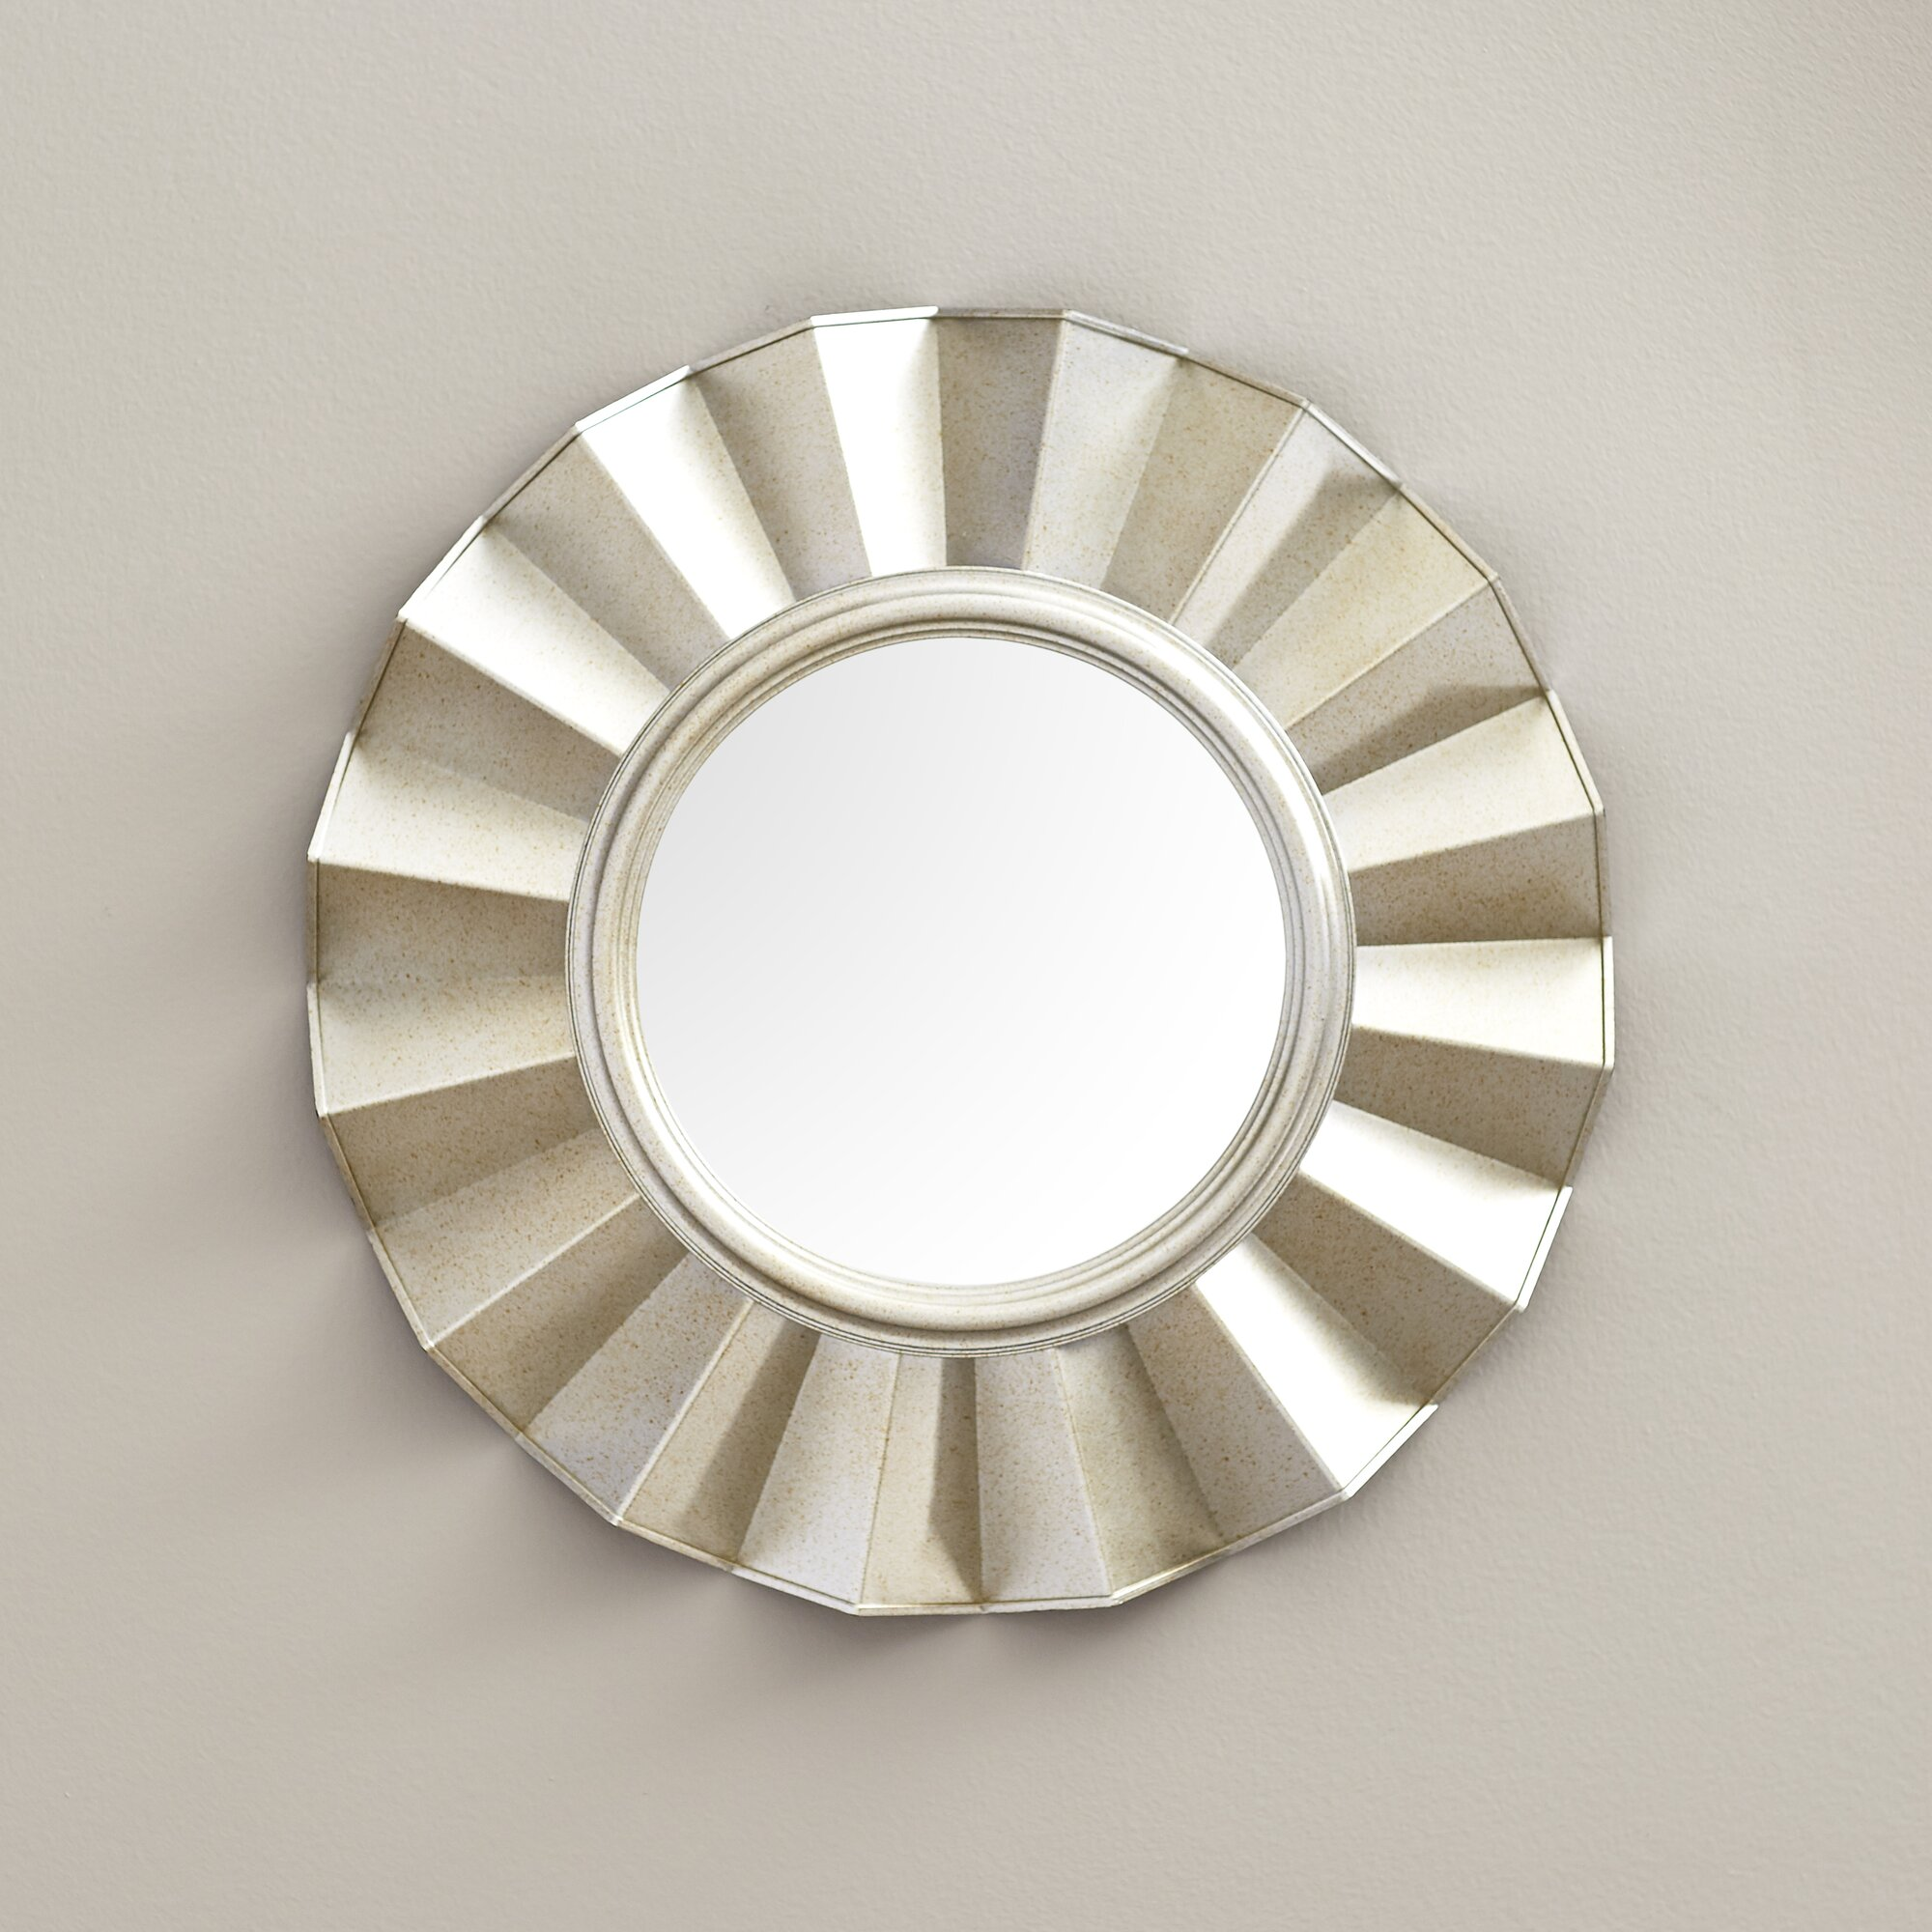 Willa Arlo Interiors Vertical Round Wall Mirror Reviews